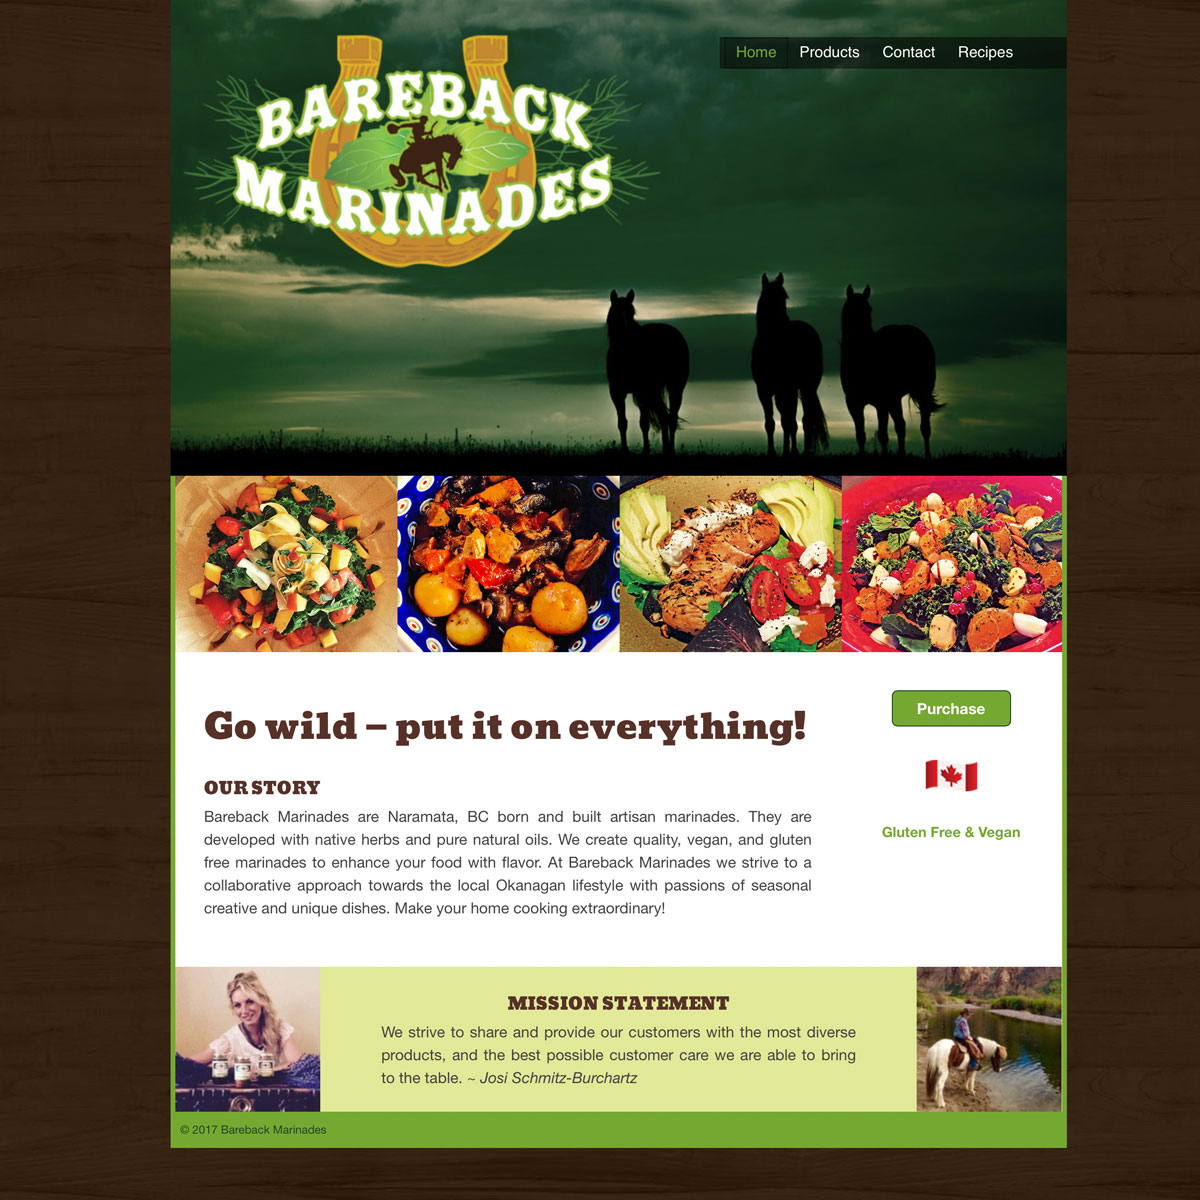 Bareback Marinades website